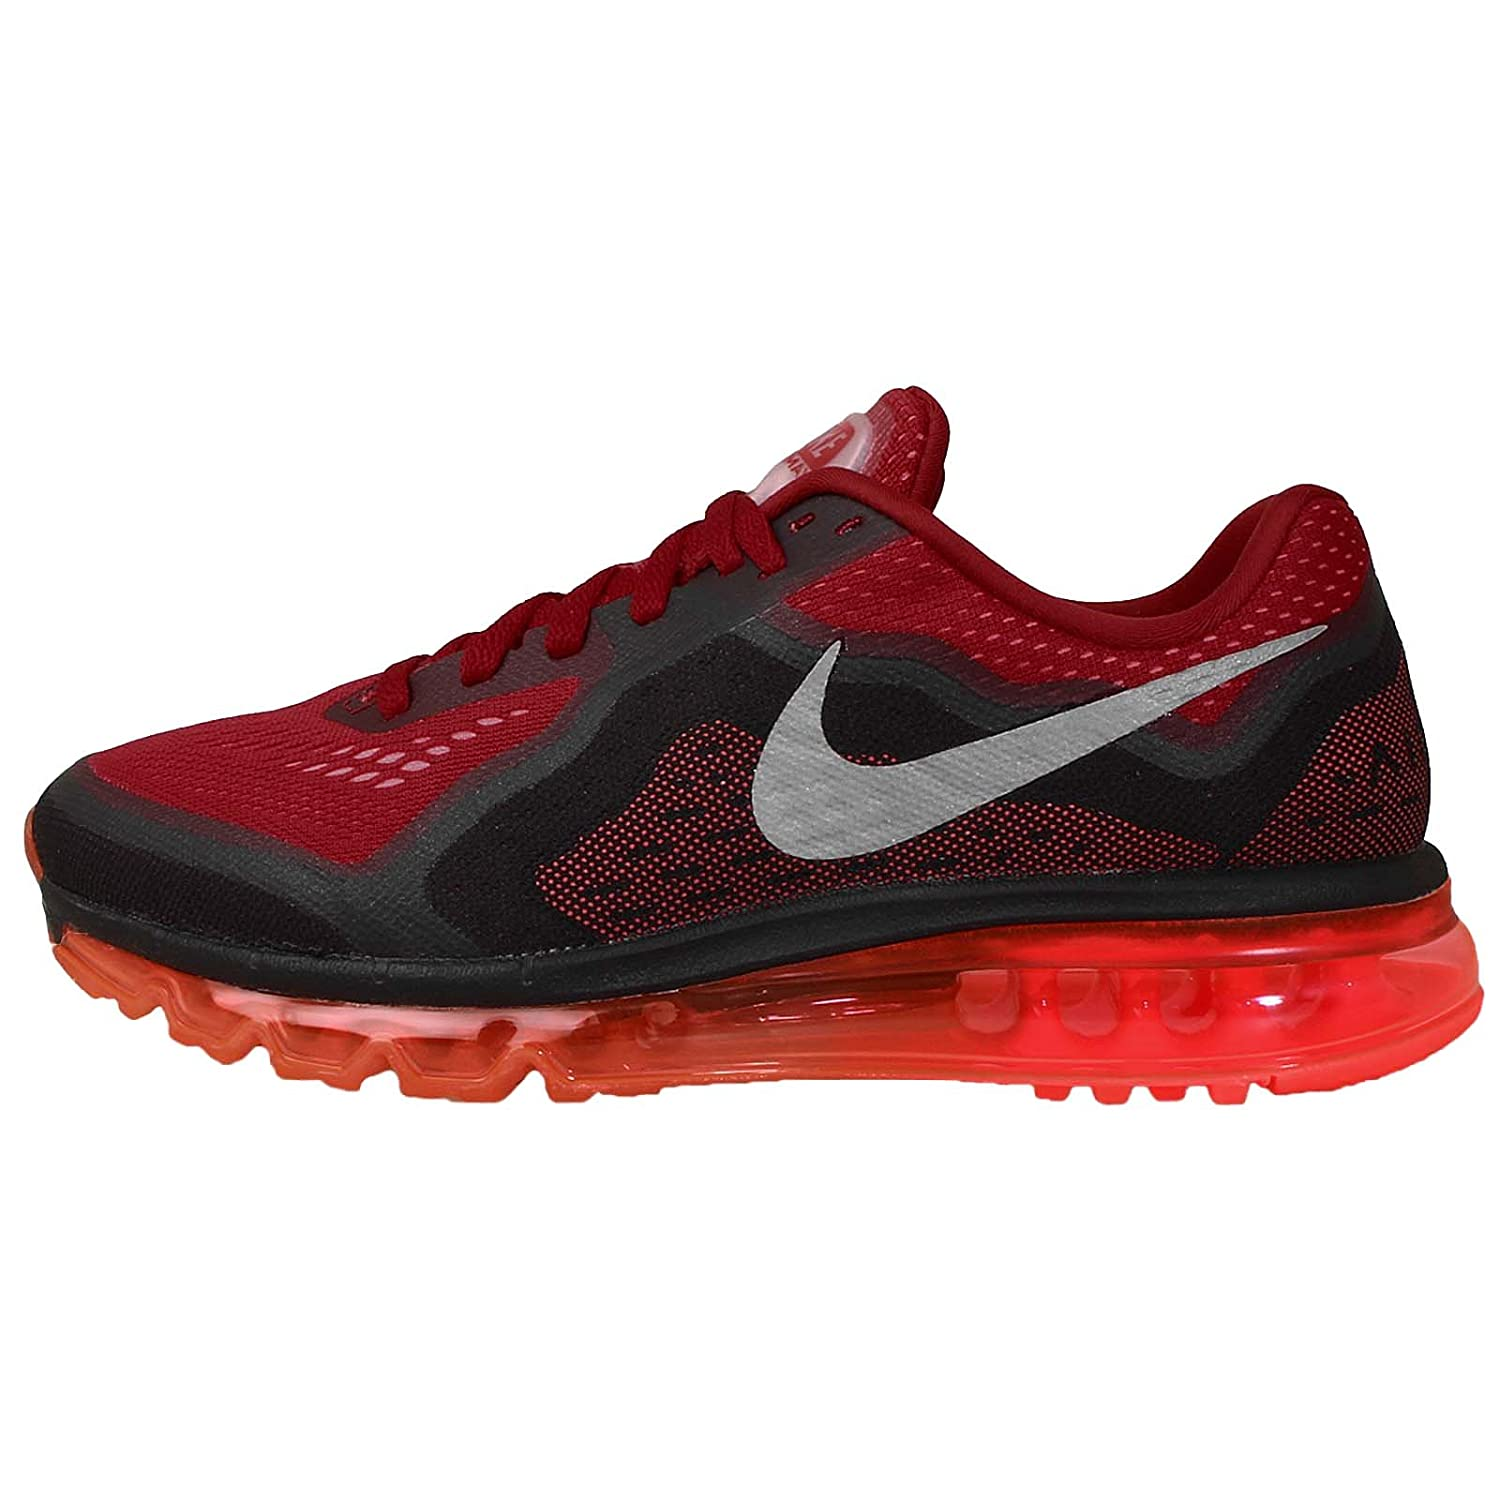 Nike Air Max 2014, Chaussures de Course Homme, Gym Redrflct